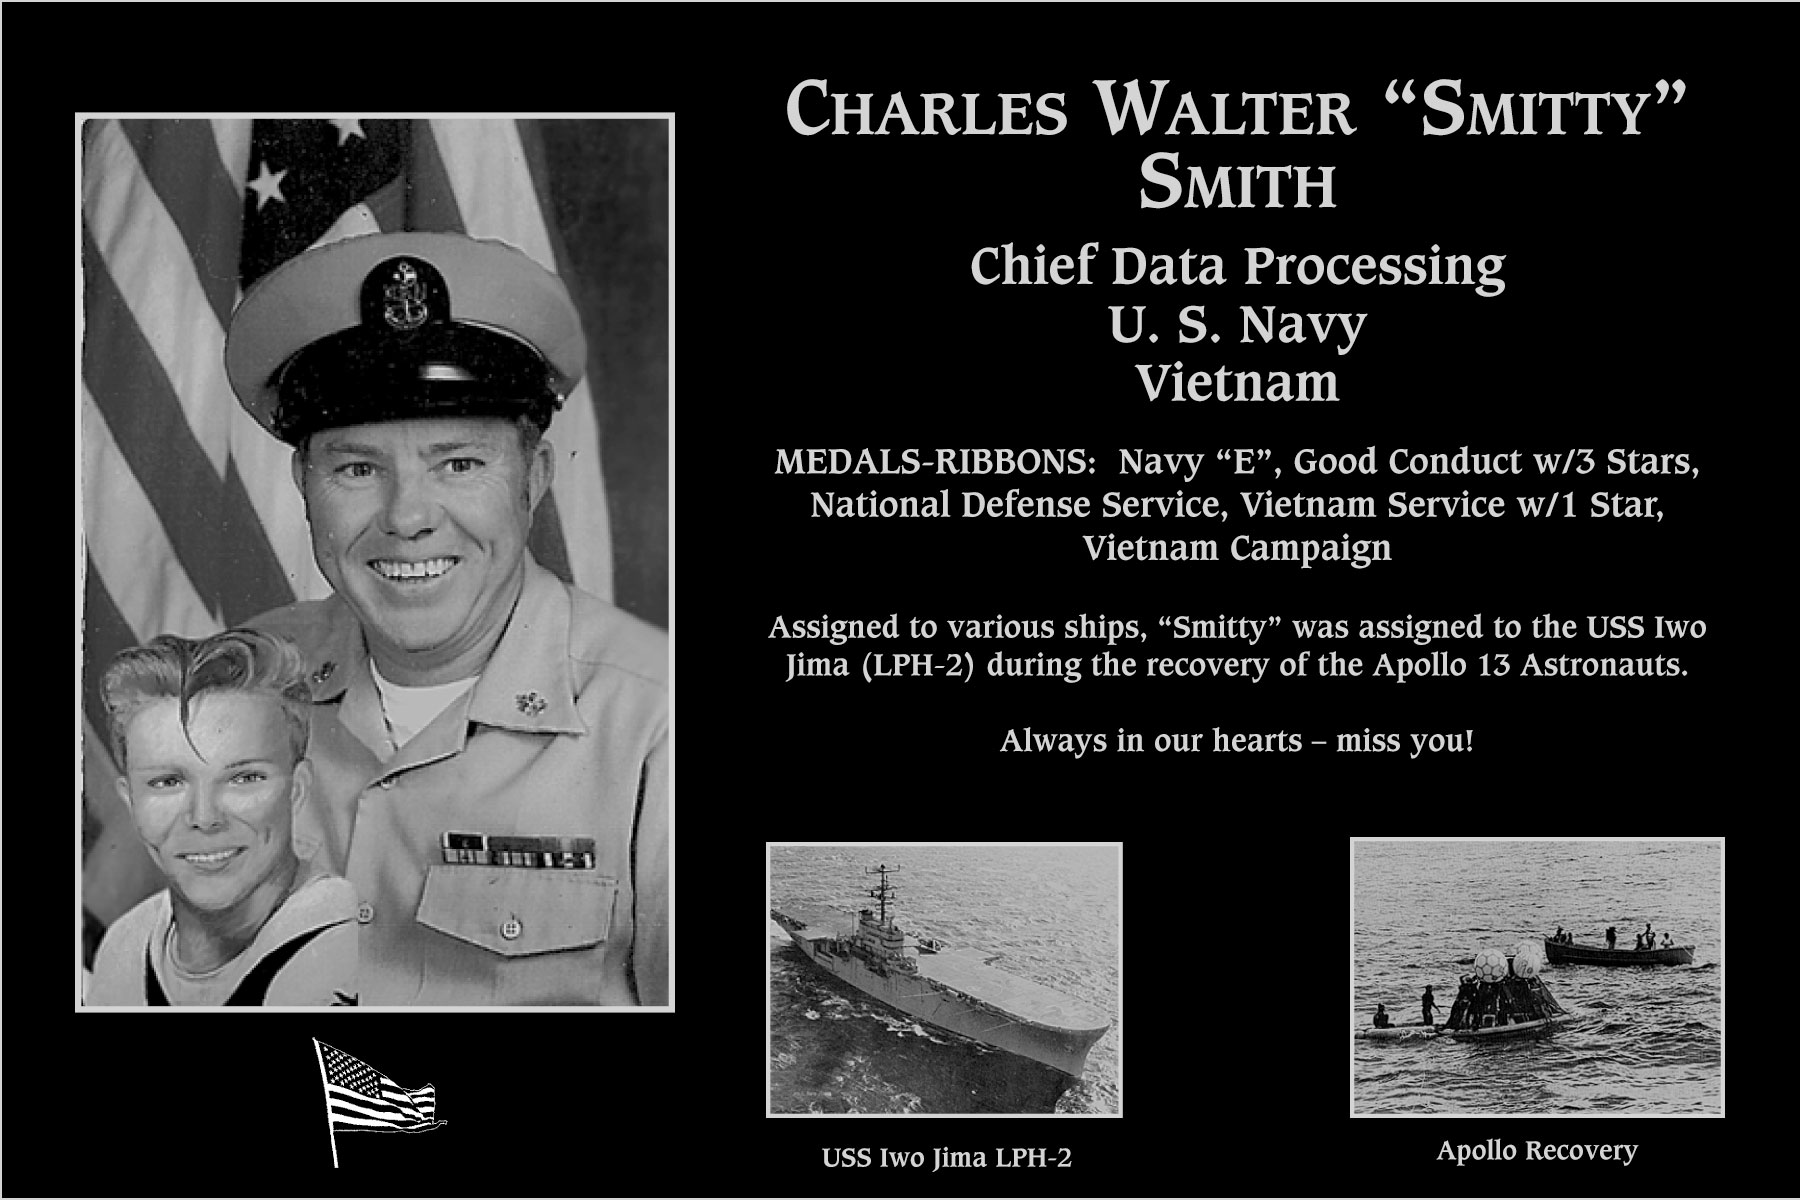 Charles Walter Smith